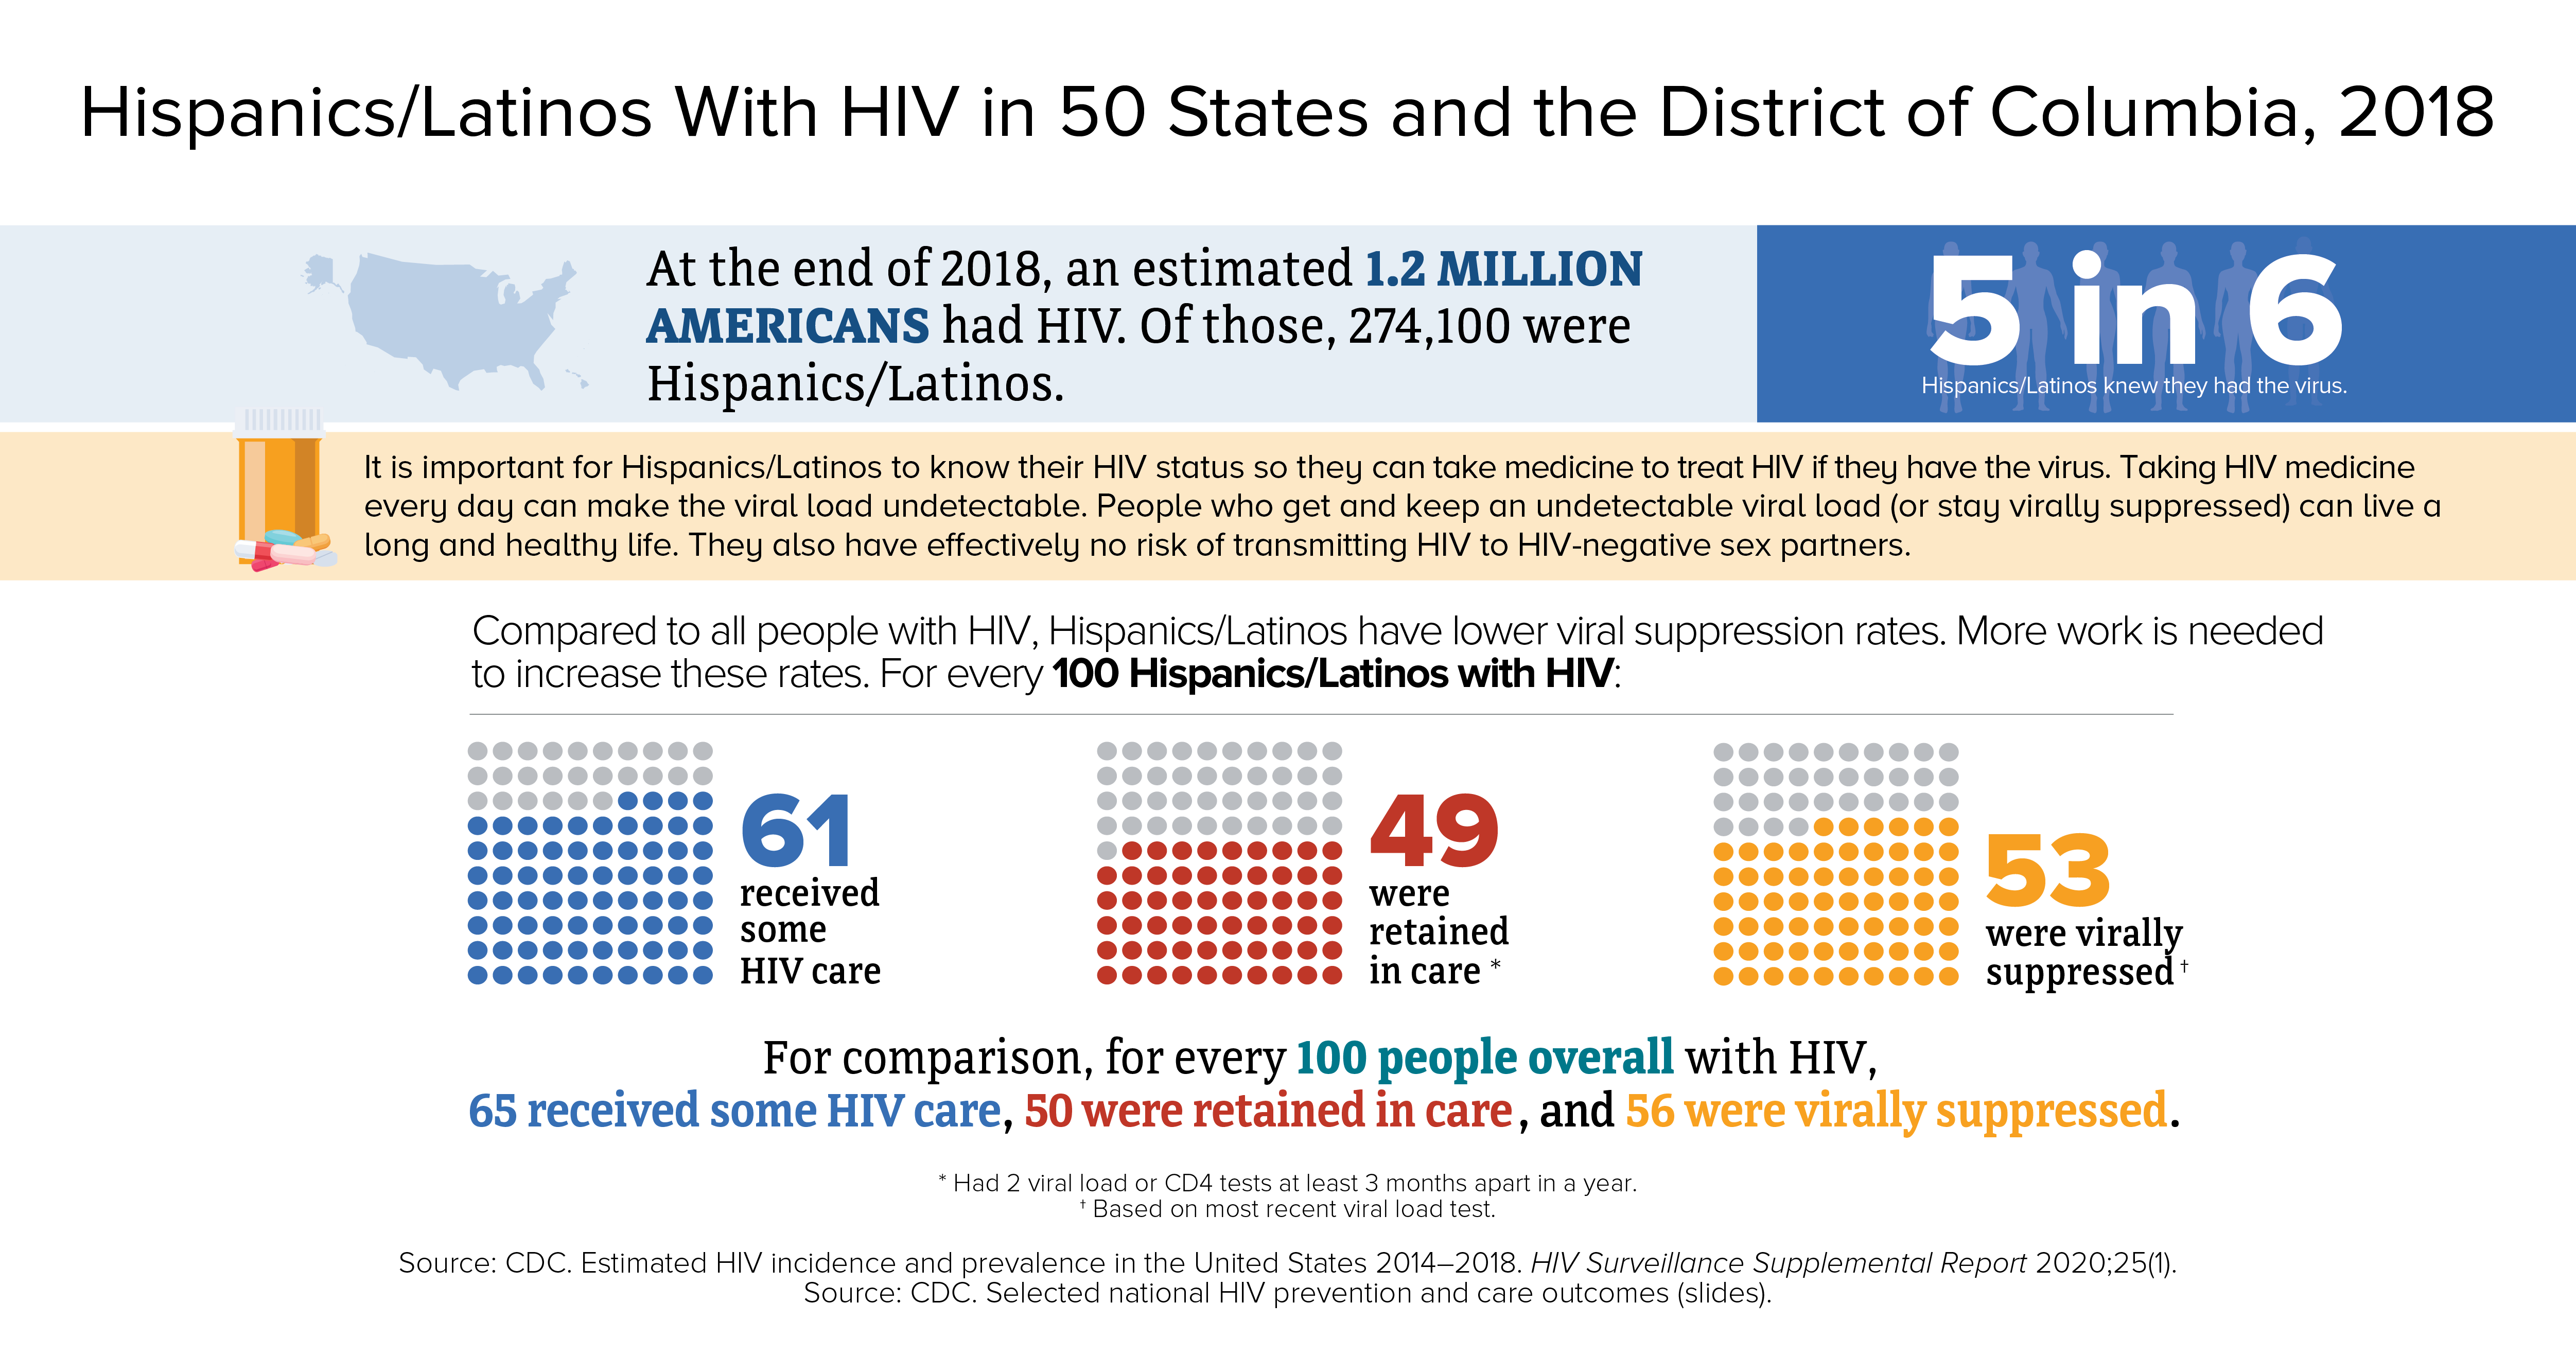 This infographic shows the continuum of care data for adult and adolescent Hispanics/Latinos with HIV. At the end of 2016, an estimated 254,600 Hispanics/Latinos had HIV. 5 in 6 knew they had the virus. For every 100 Hispanics/Latinos with HIV in 2016, 60 received some HIV care, 49 were retained in care, and 51 were virally suppressed. A person with HIV who takes HIV medicine as prescribed and gets and stays virally suppressed or undetectable can stay healthy and has effectively no risk of sexually transmitting HIV to HIV-negative partners.